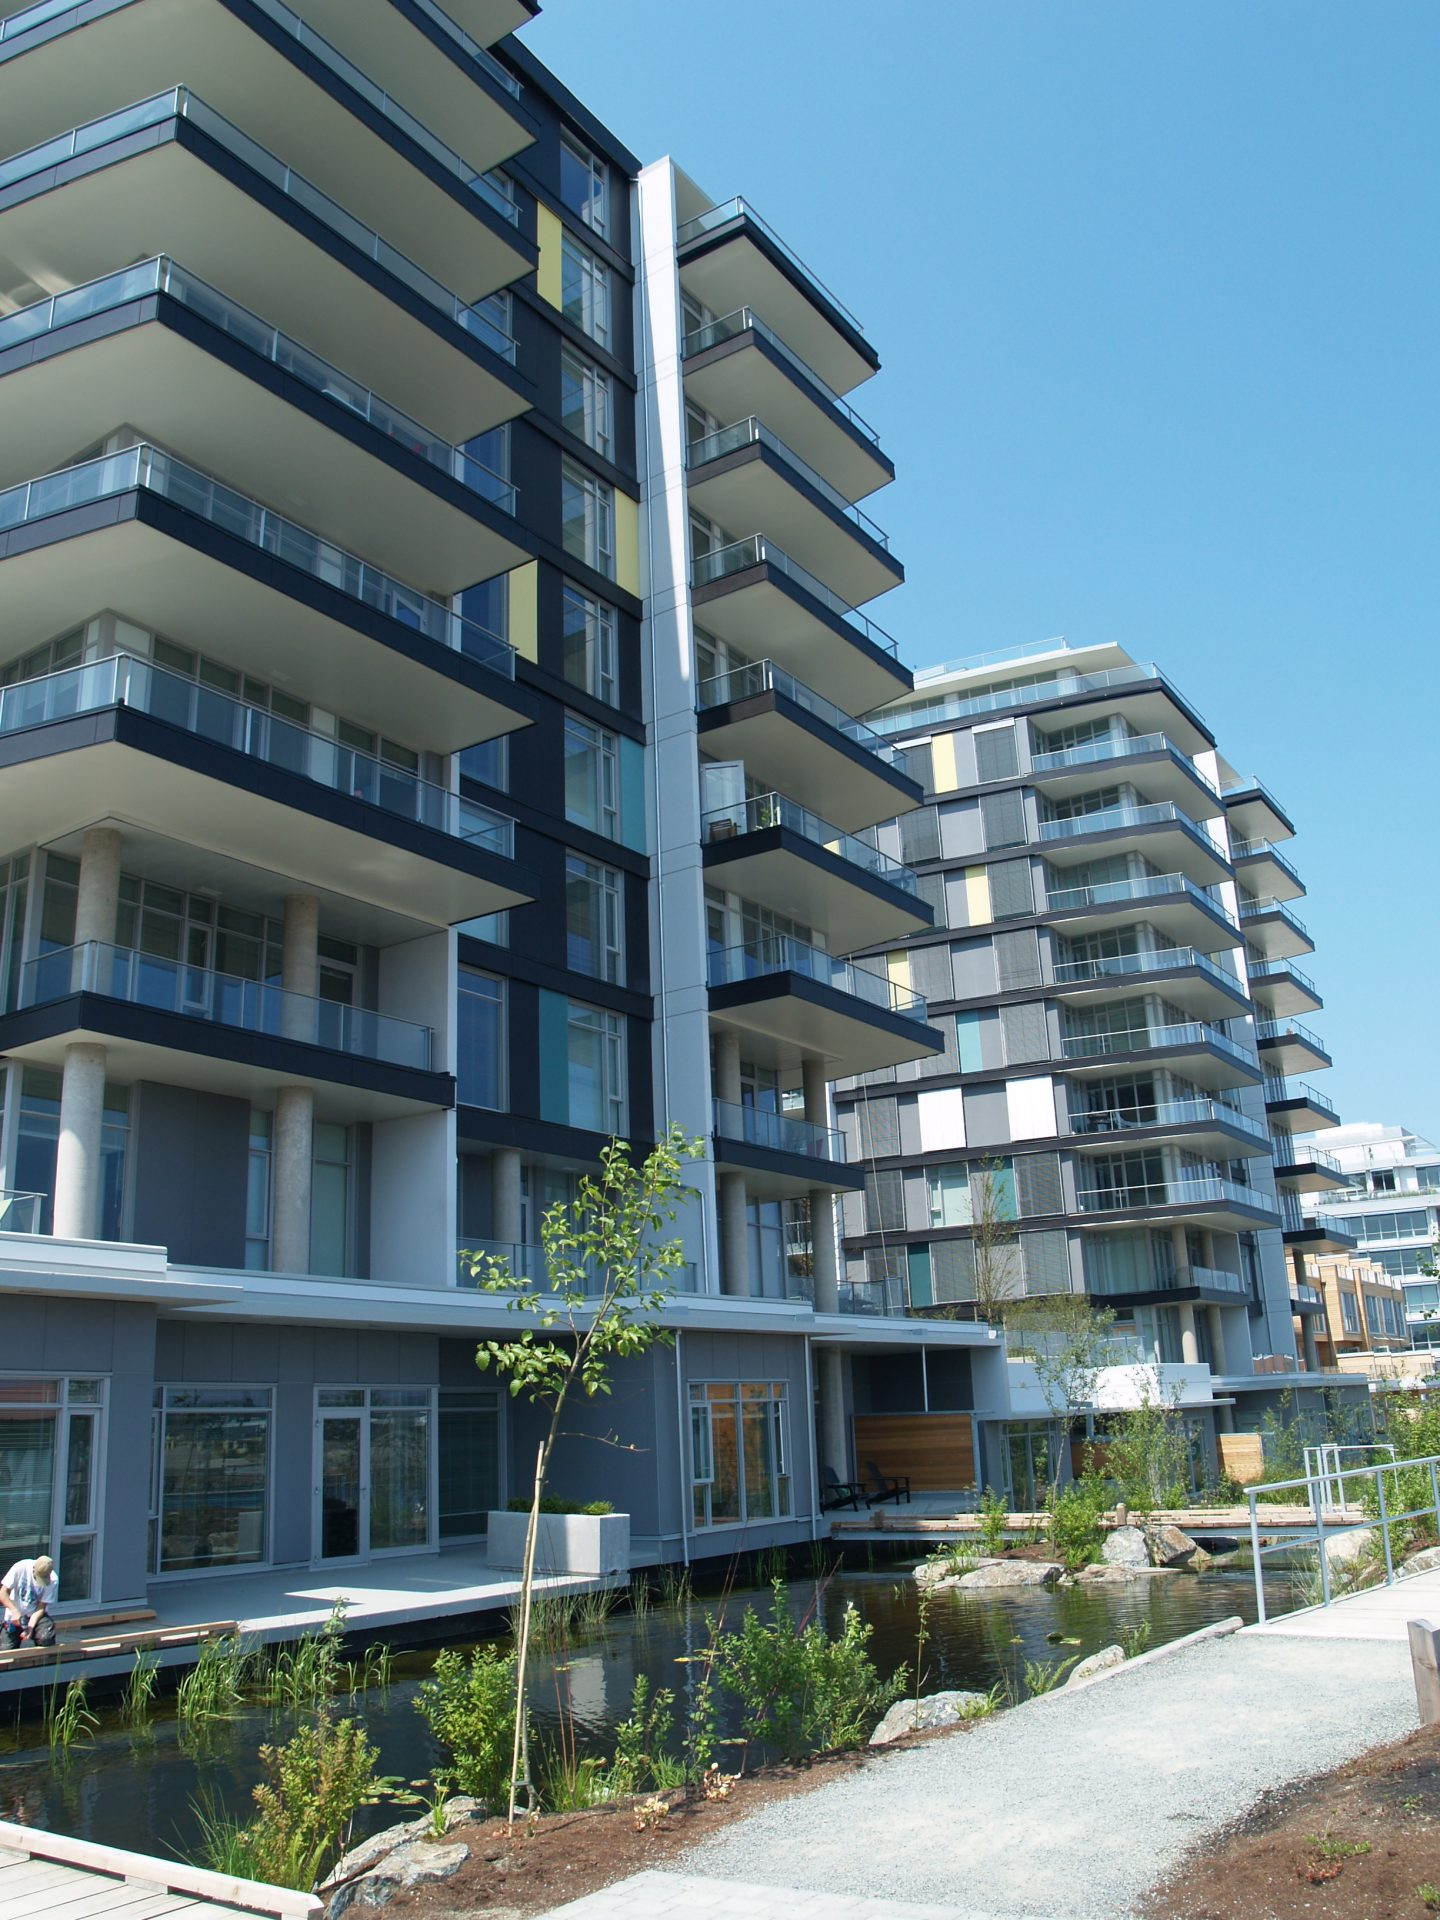 Victoria's Dockside Green first in Canada to achieve LEEDv4 ND platinum certification